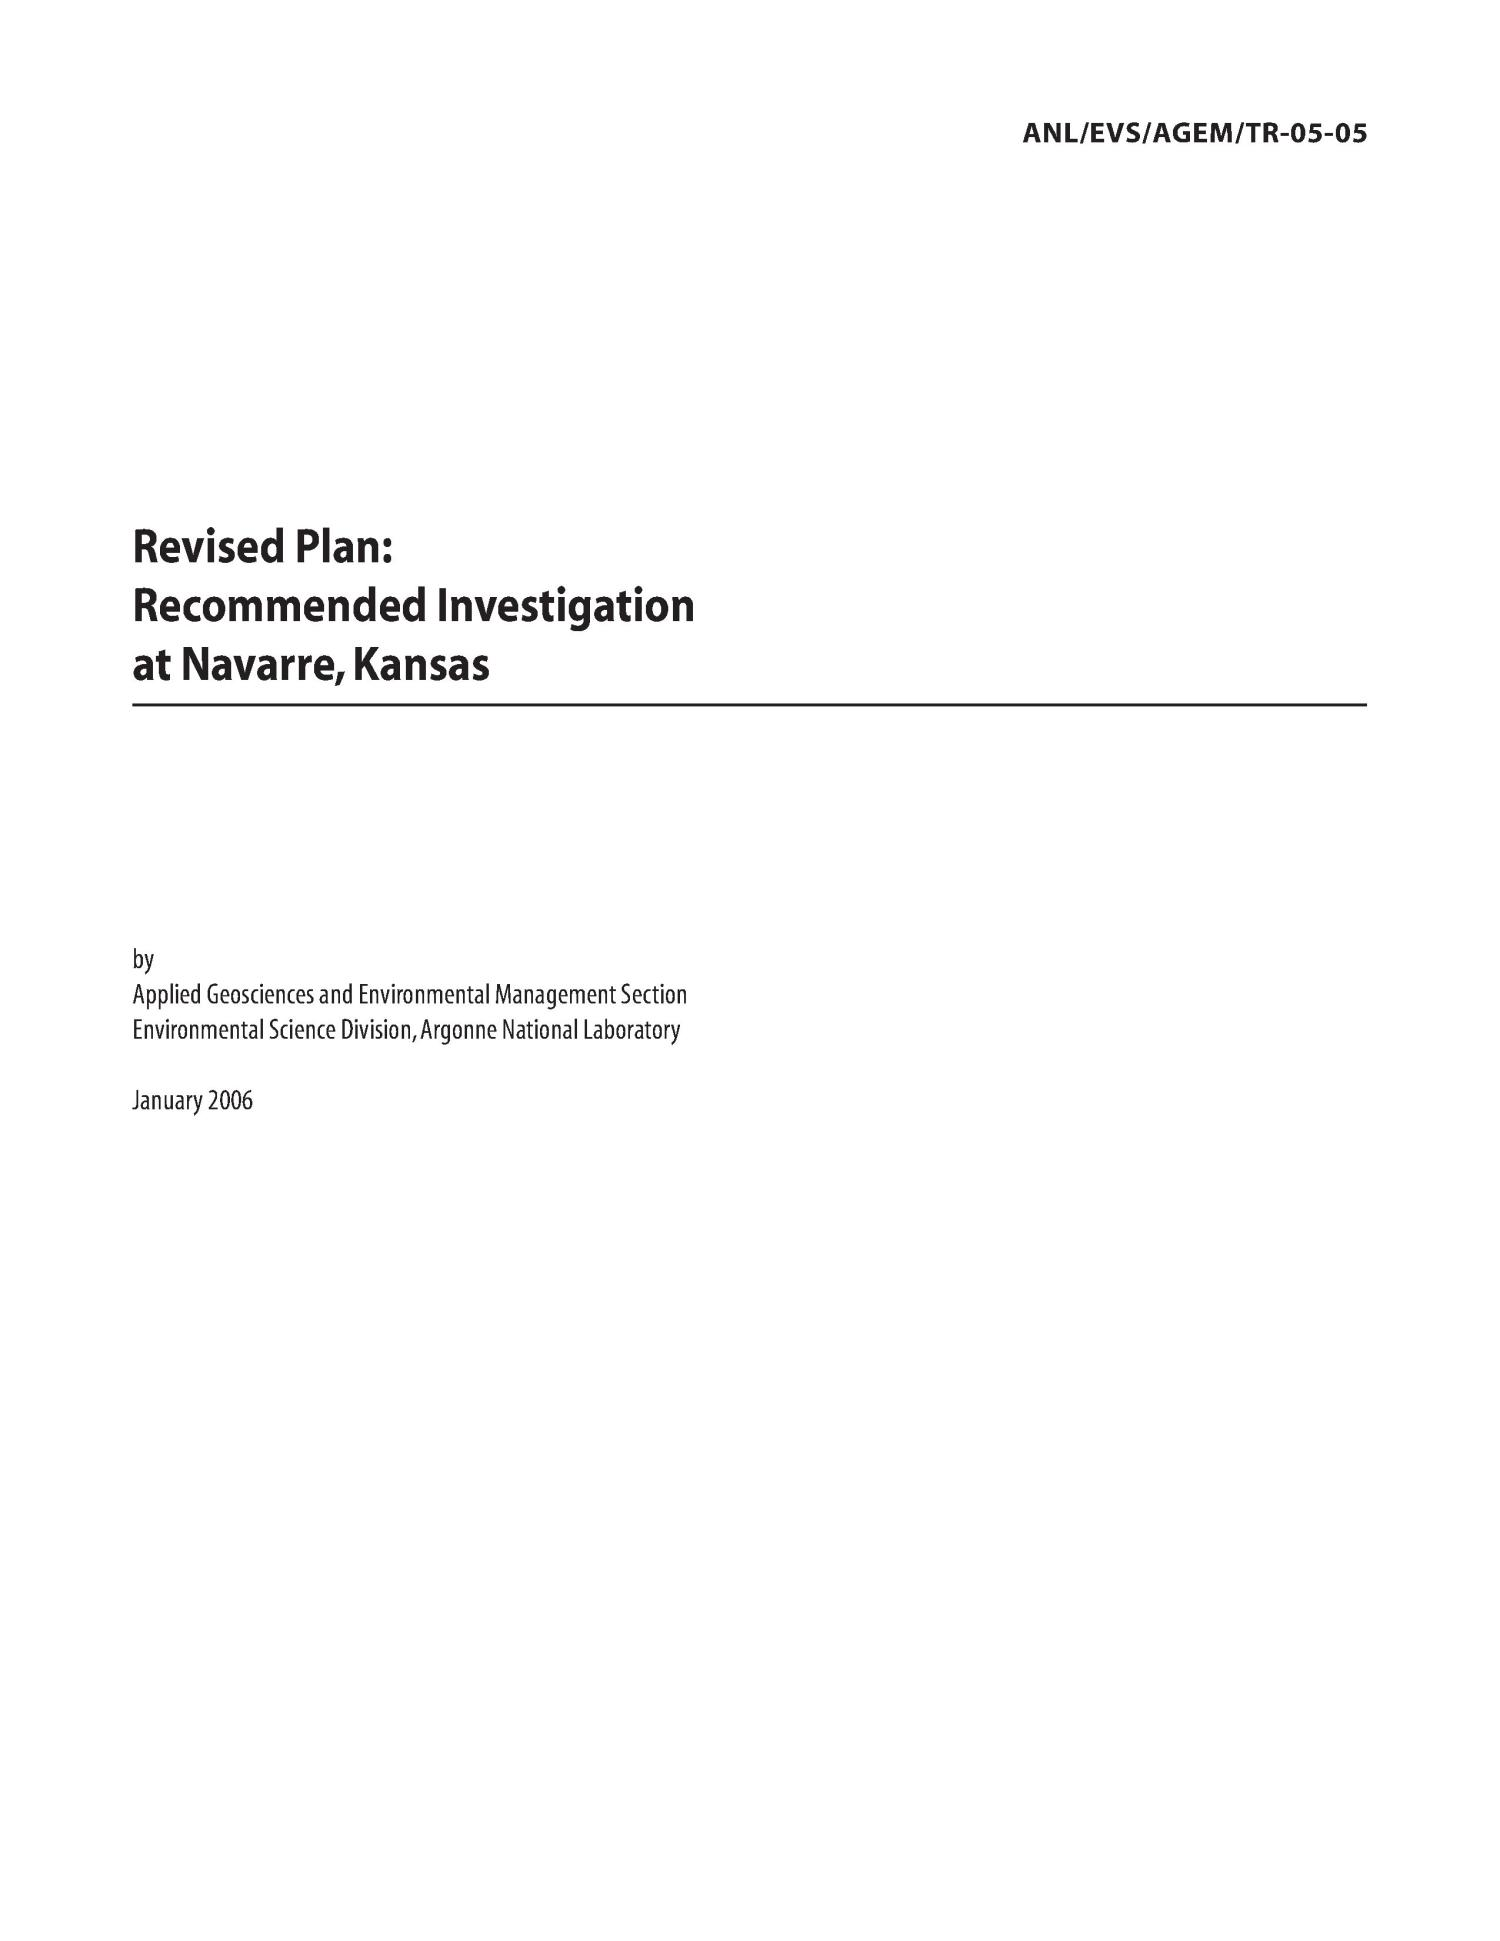 Revised plan : recommended investigation at Navarre, Kansas.                                                                                                      [Sequence #]: 3 of 36